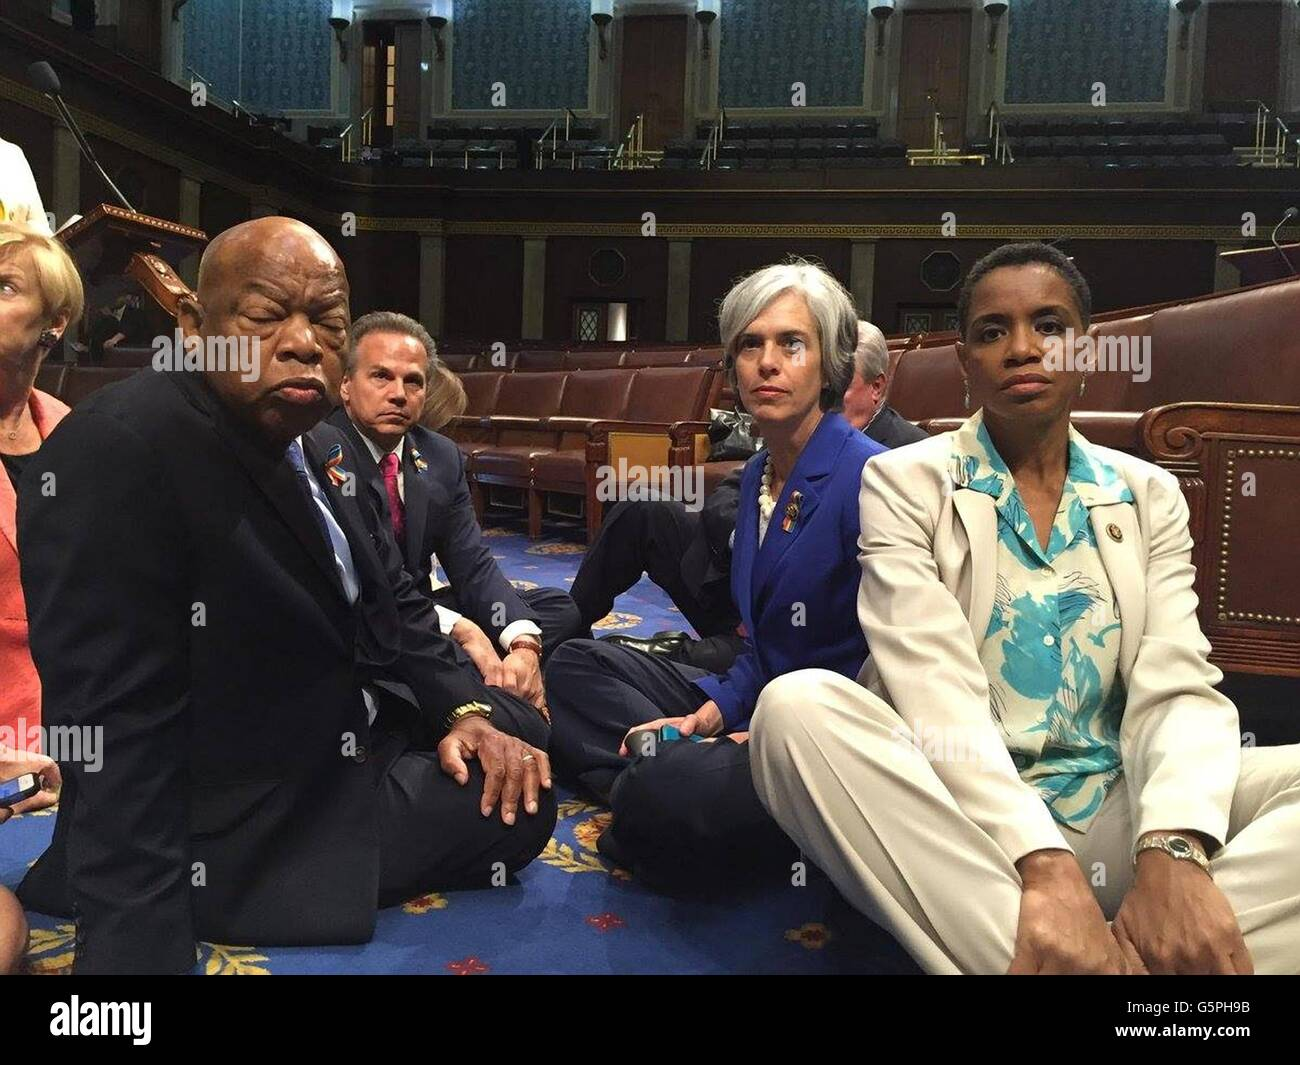 Washington DC., USA. 22nd June, 2016. U.S Rep. John Lewis, sitting left, leads a group of Democrats from the House - Stock Image